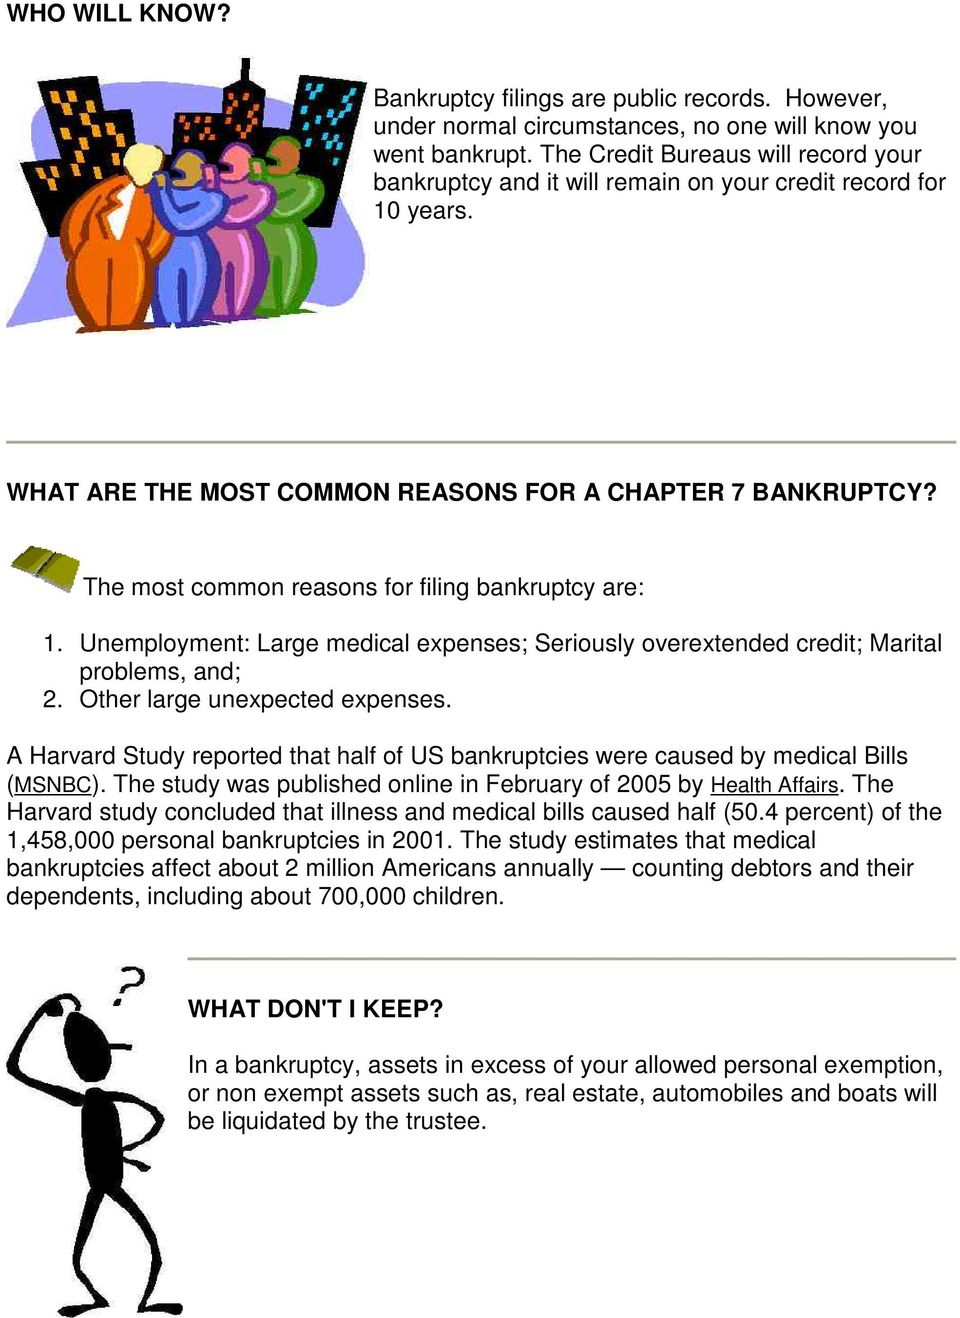 The most common reasons for filing bankruptcy are: 1. Unemployment: Large medical expenses; Seriously overextended credit; Marital problems, and; 2. Other large unexpected expenses.